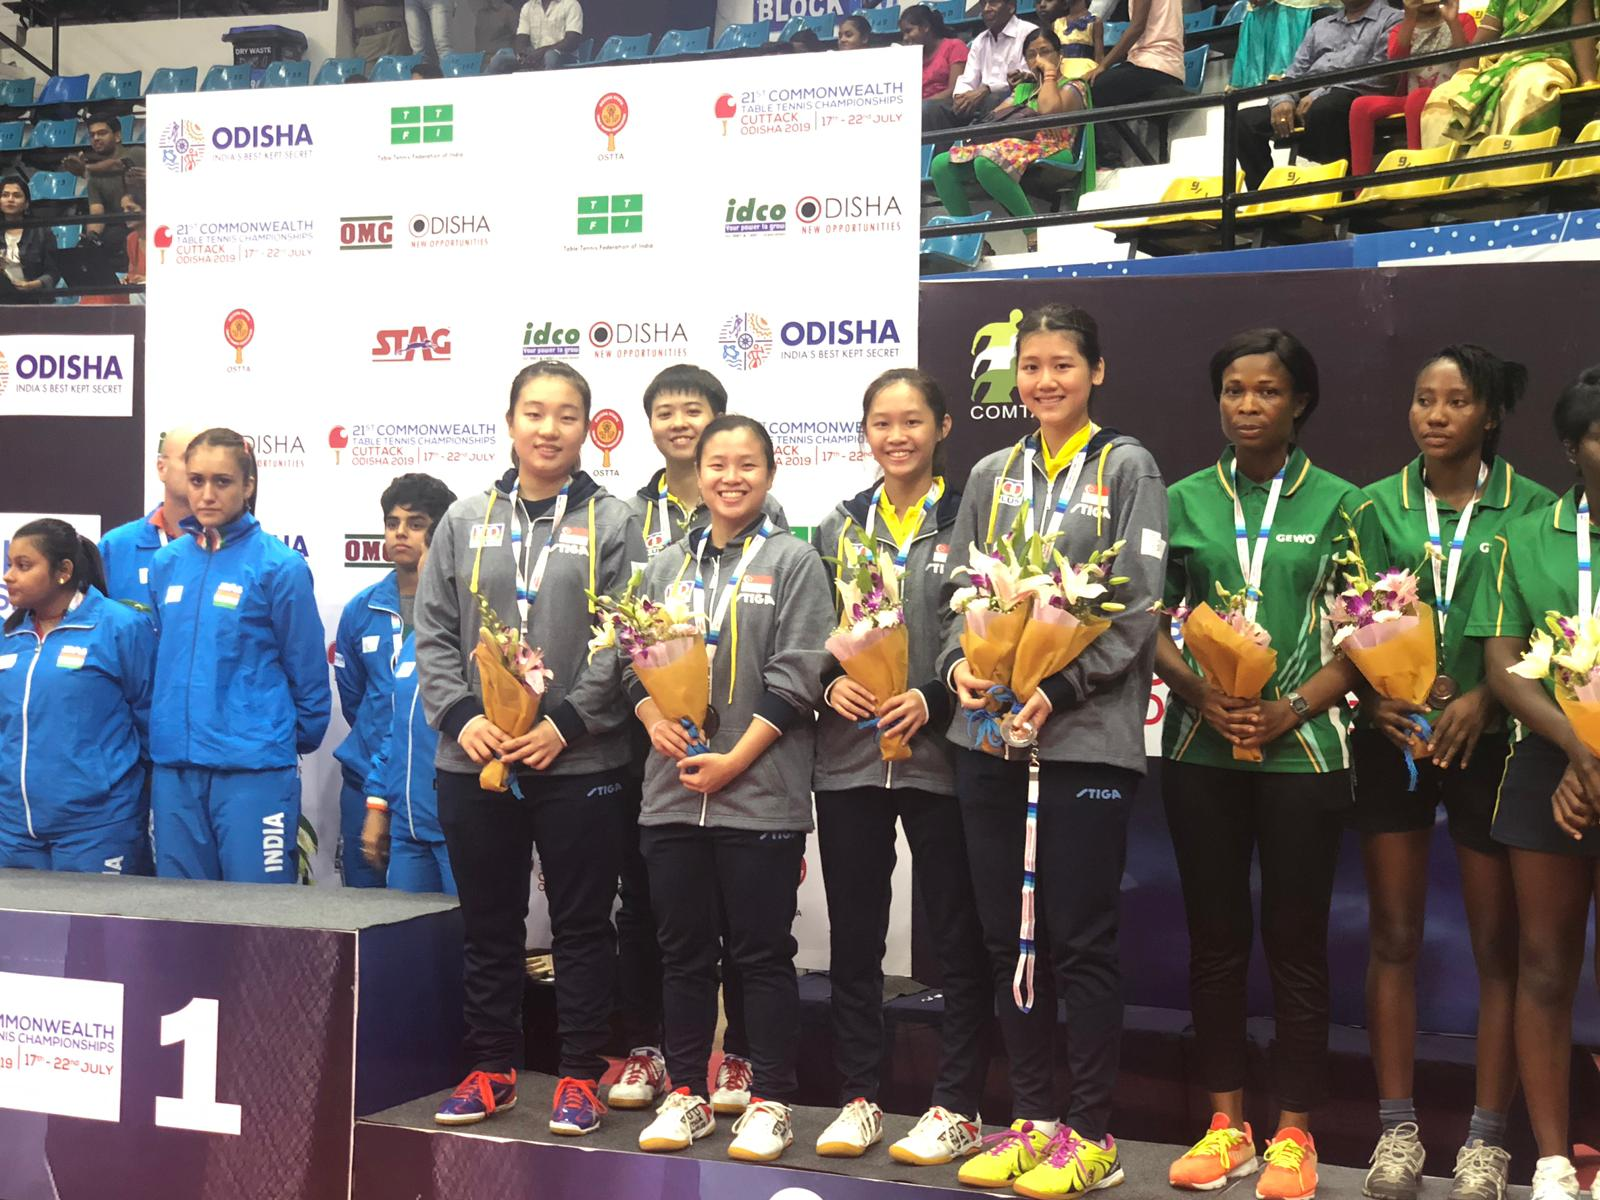 Team Singapore scored 2 bronzes at the 21st Commonwealth Table Tennis Championships